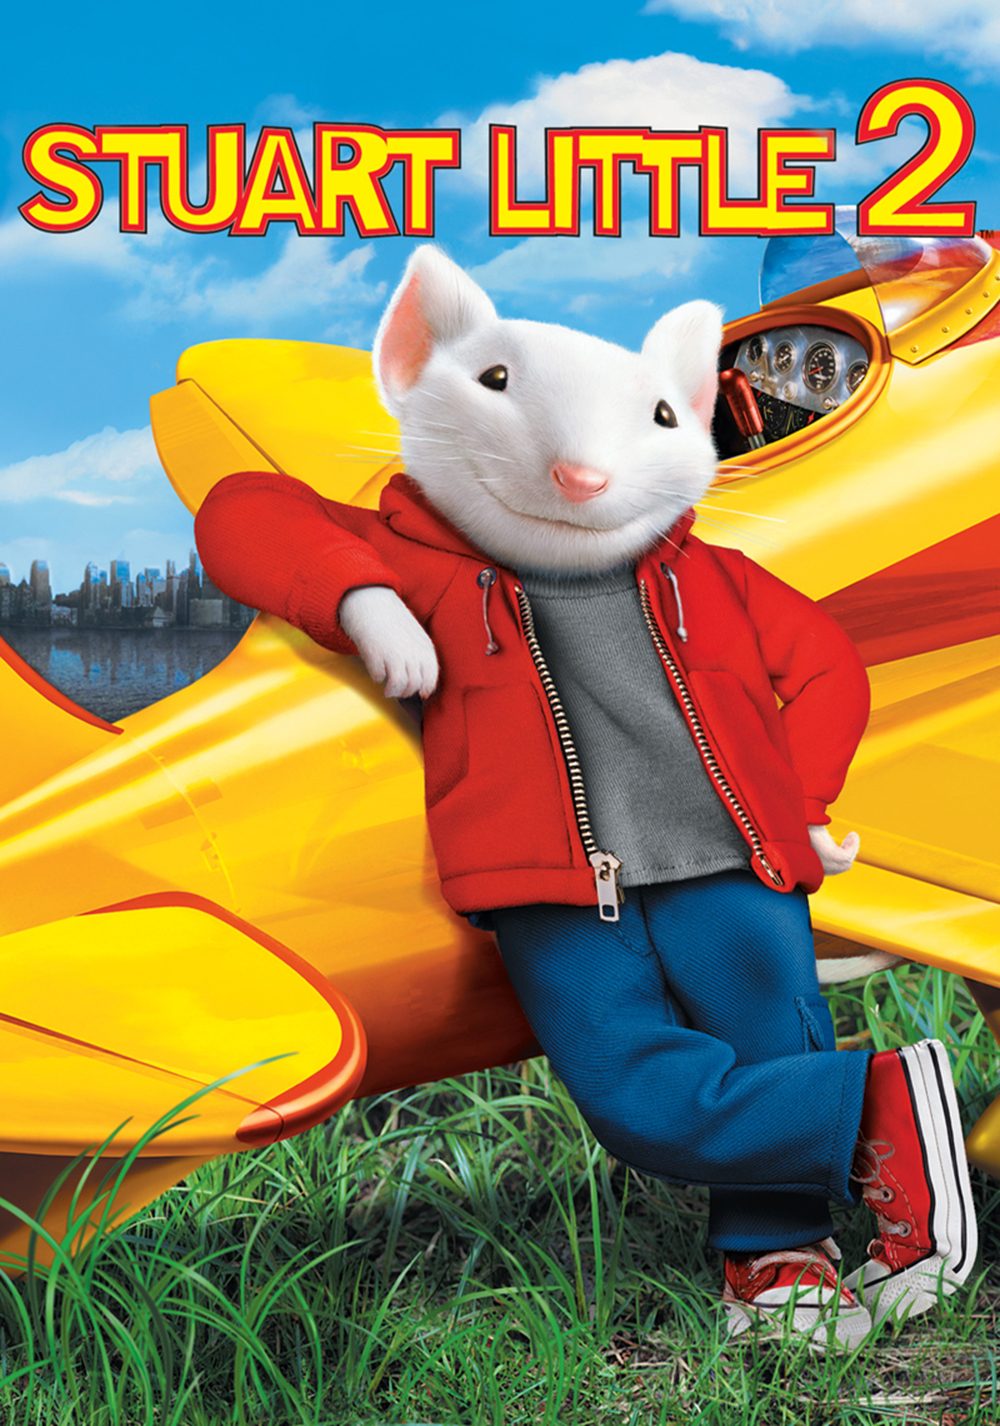 Stuart Little 2 (2002) ταινιες online seires oipeirates greek subs